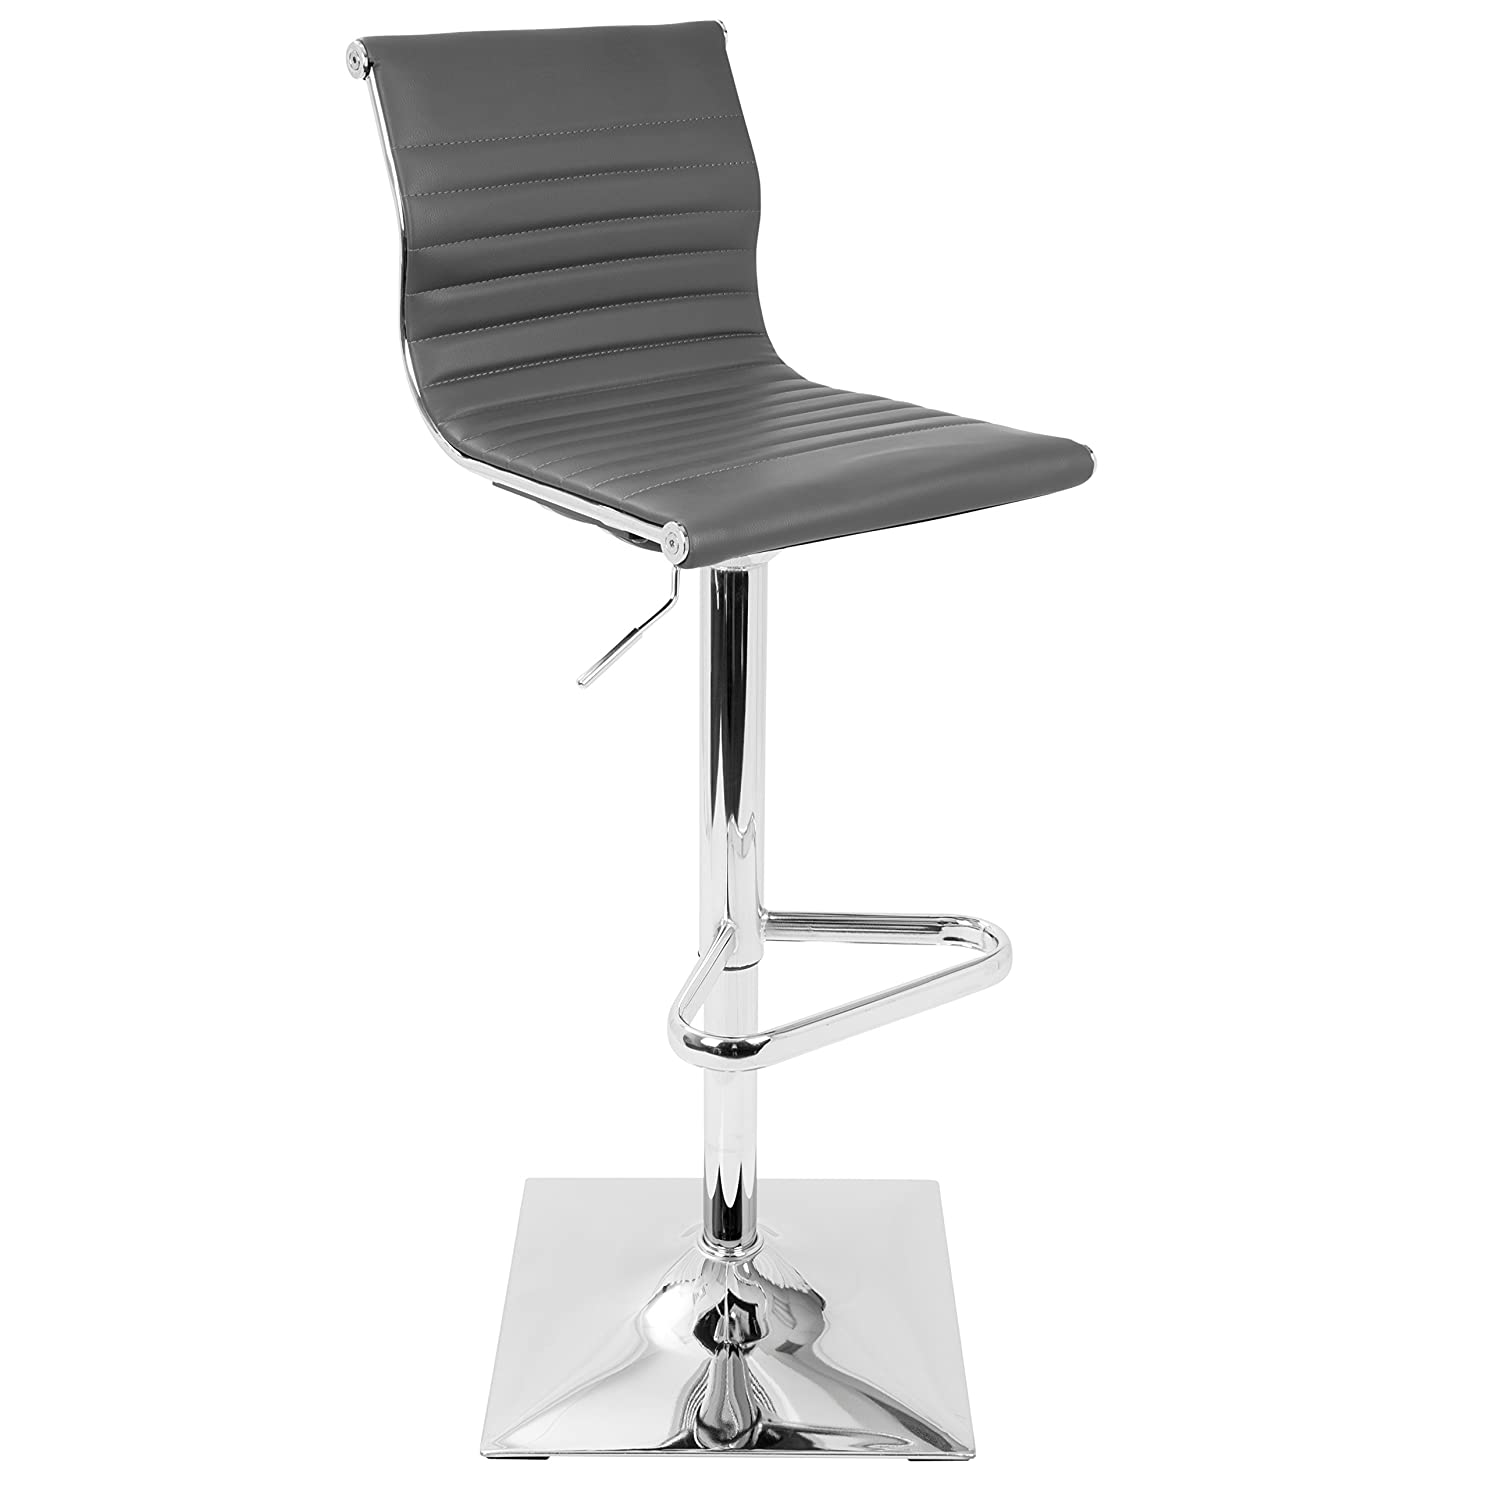 Clay Alder Home Tower Master Contemporary Adjustable Bar Stool in Faux Leather - Grey